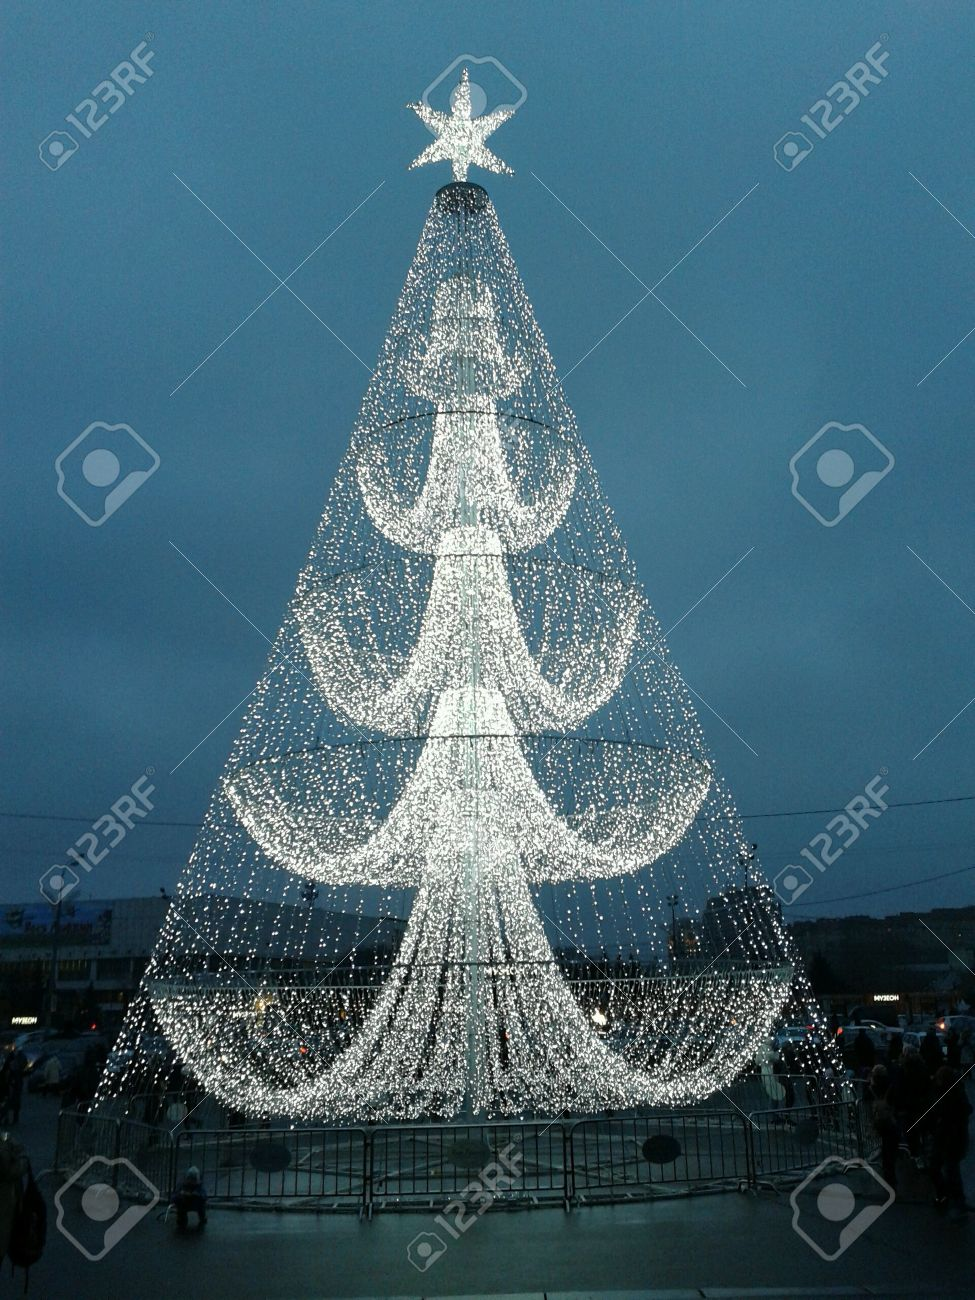 Christmas Tree Made Of Lights Moscow Stock Photo, Picture And ...